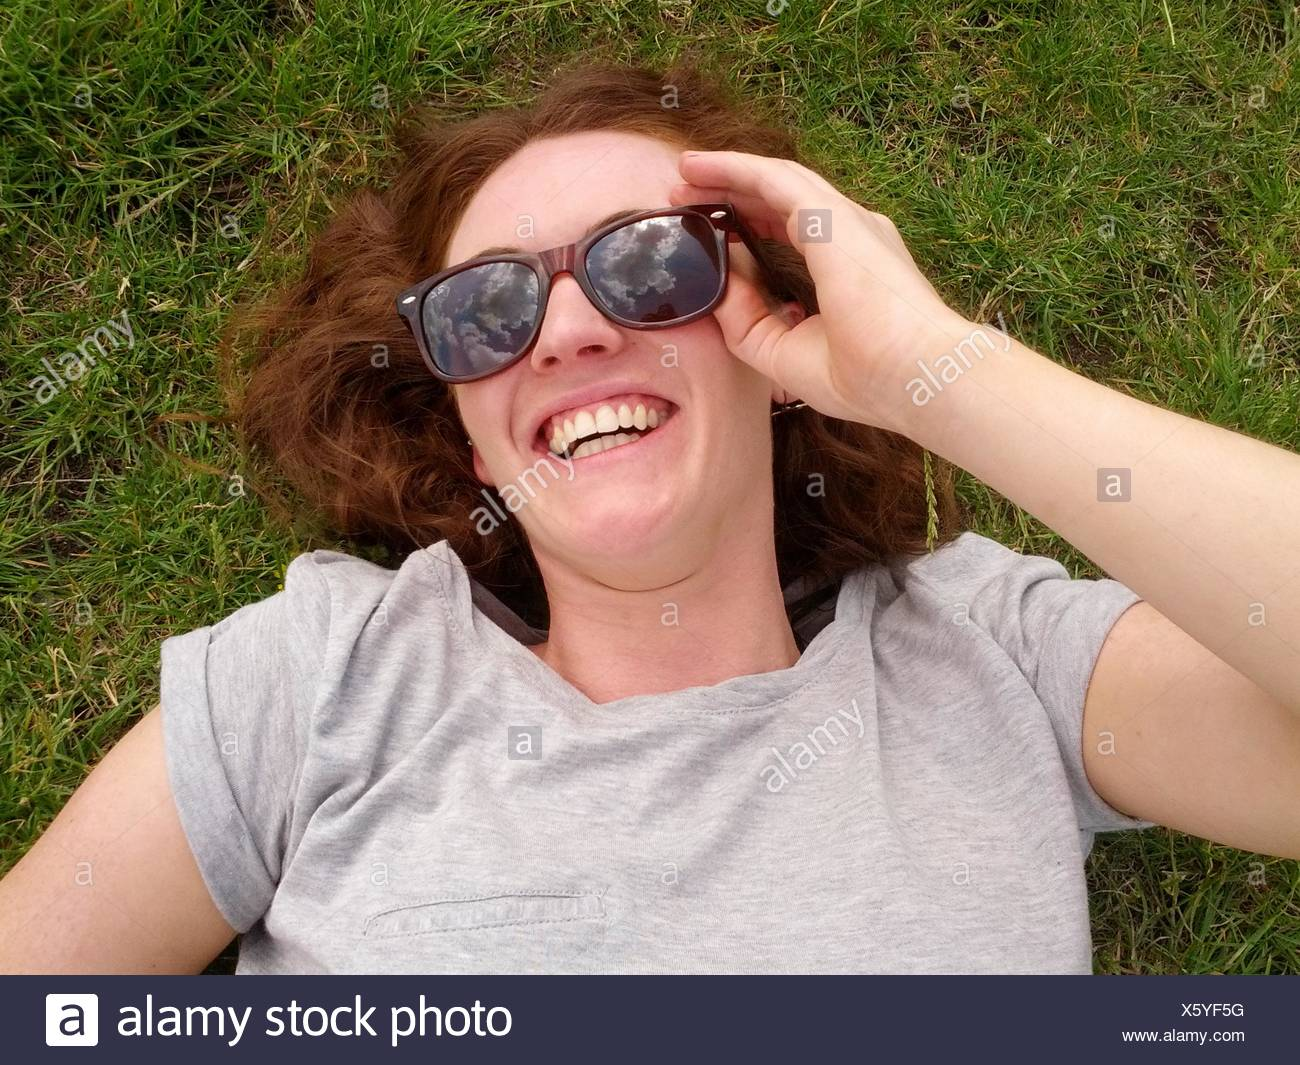 Smiling Young Woman Lying On Grass - Stock Image